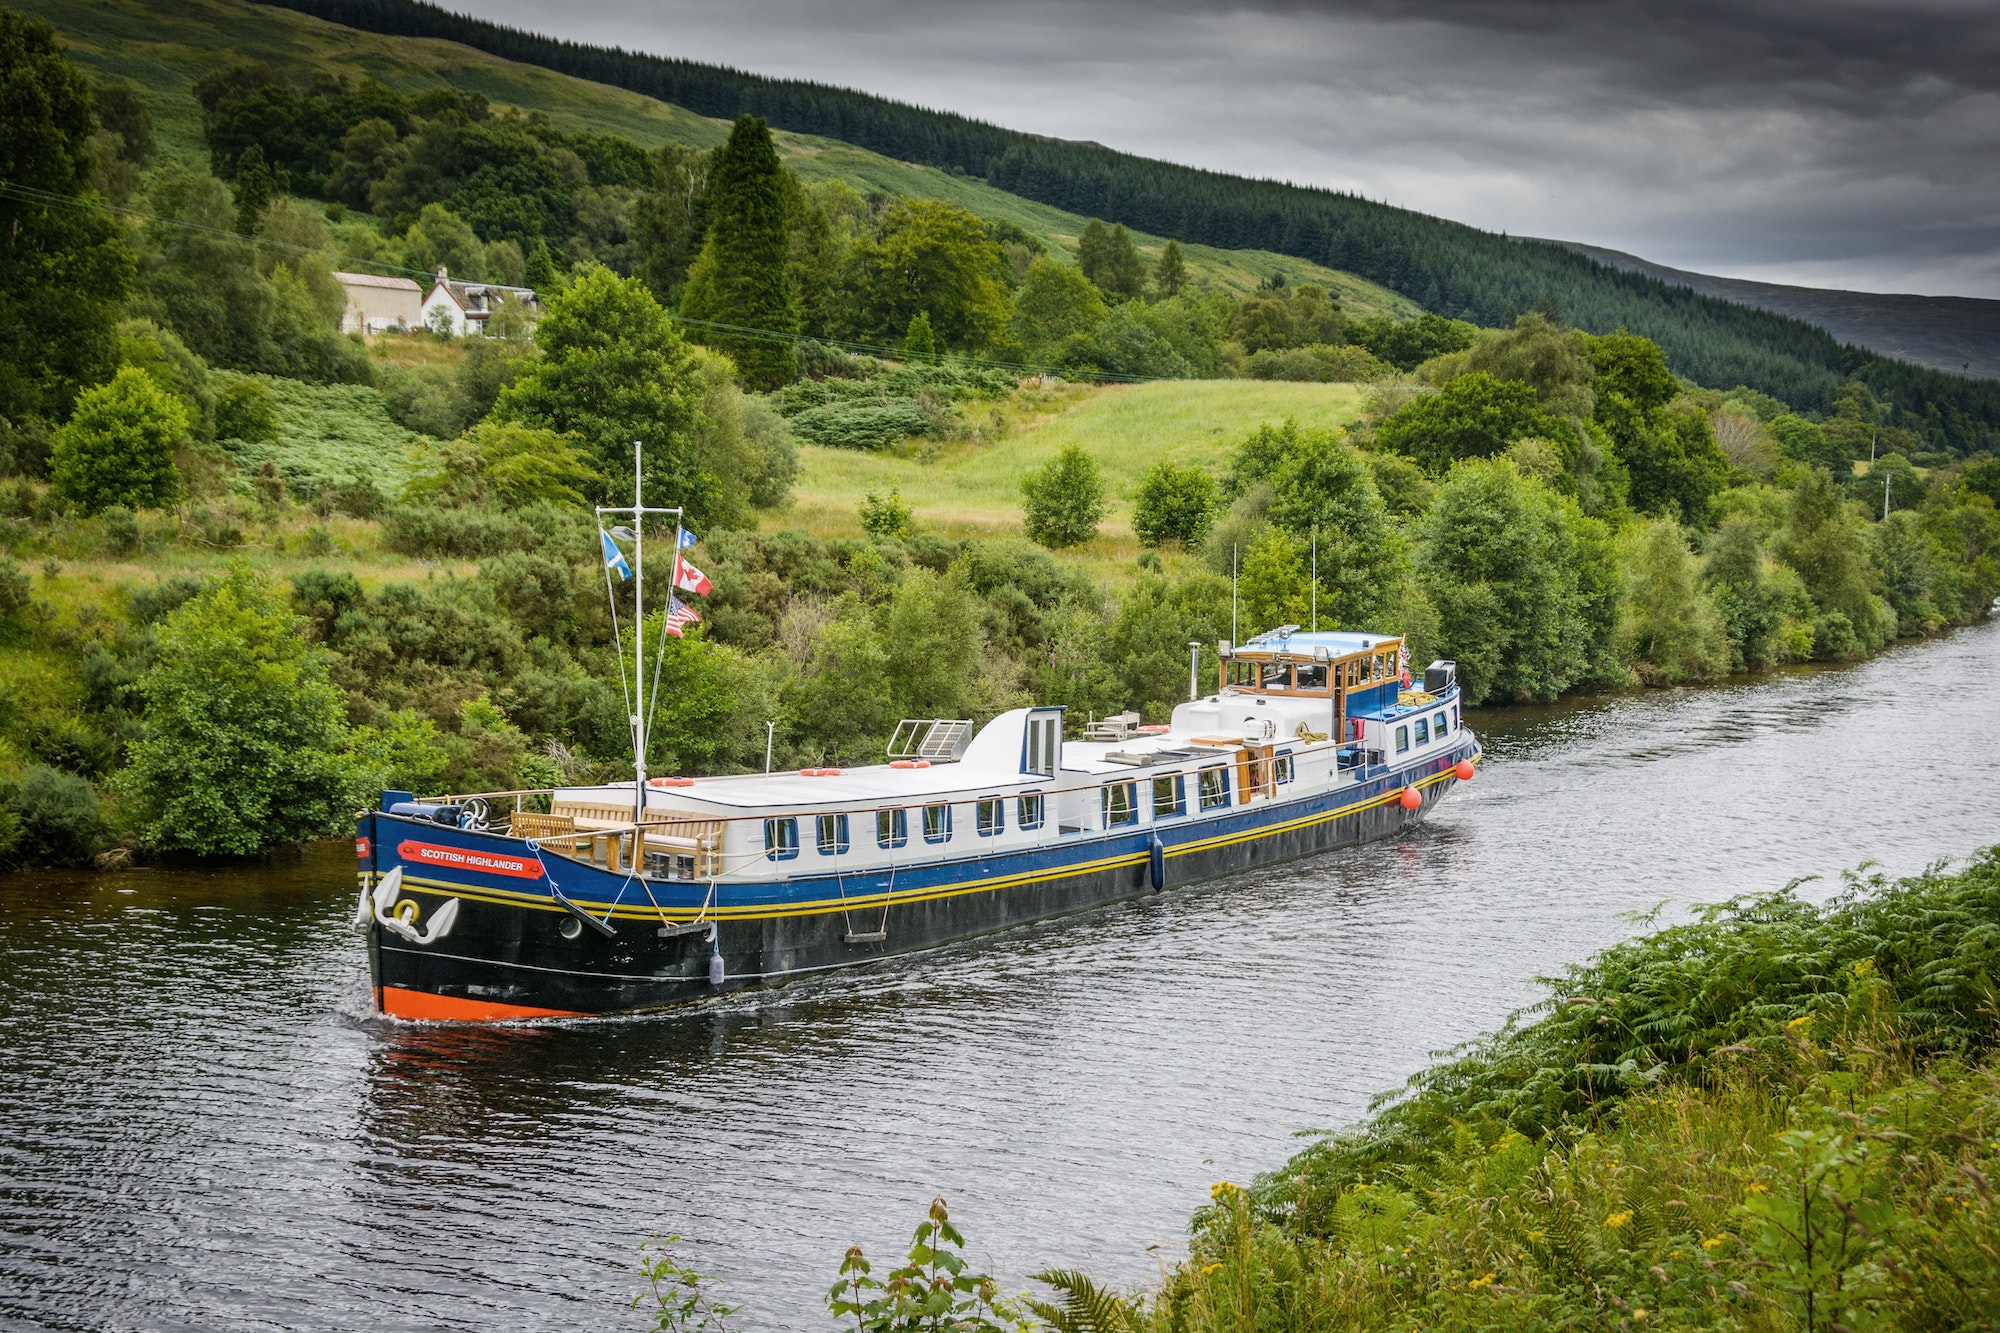 While a relatively unknown cruising destination now, the Caledonian Canal in Scotland is fast gaining popularity.